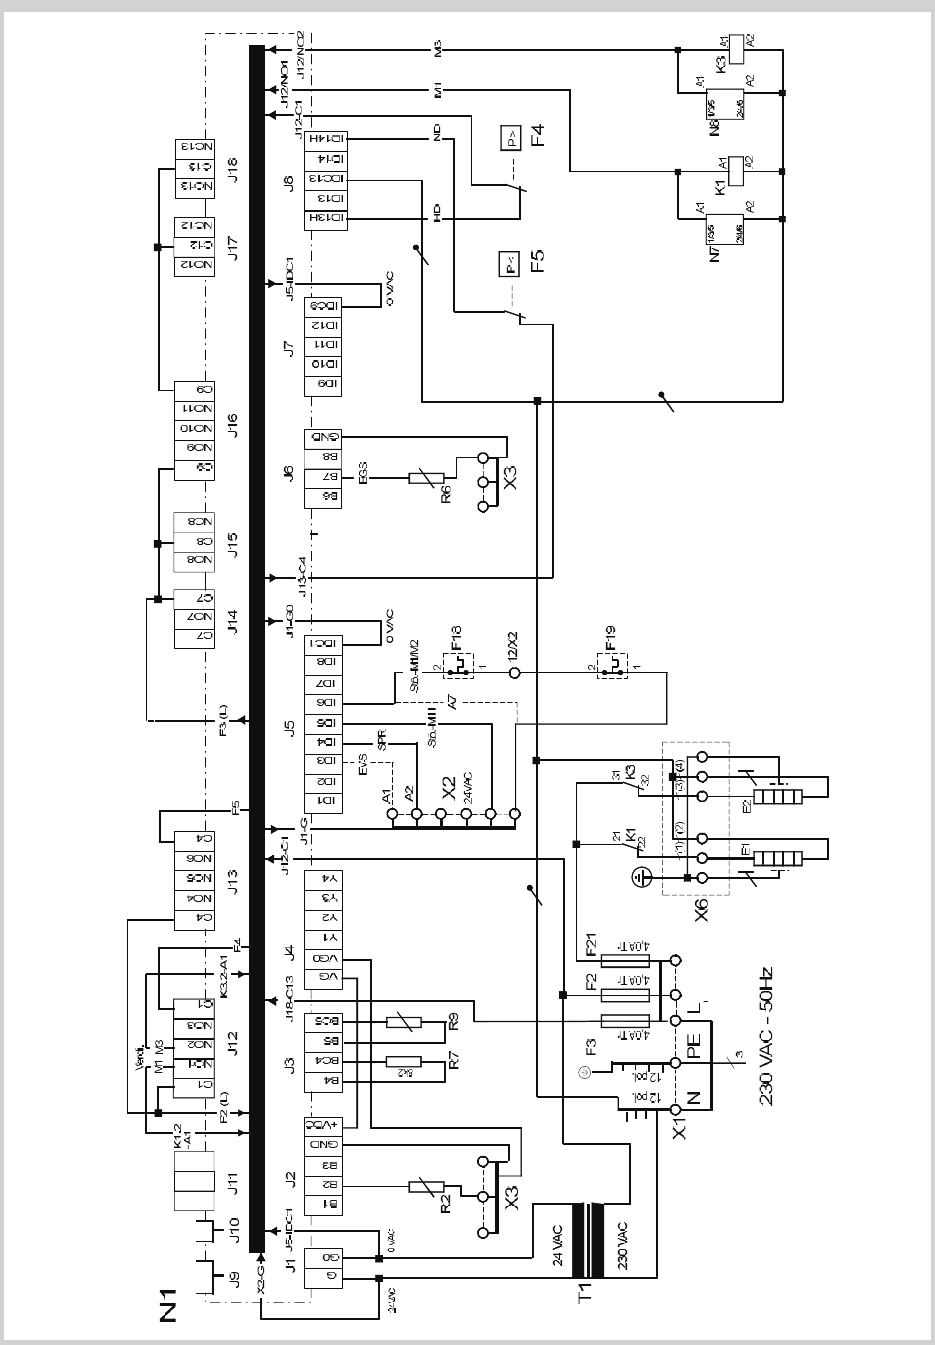 Haul Master Trailer Wiring Diagram also P 0900c1528008a2f6 additionally Tractor Parts Model furthermore Fuse Box 2001 Ford Mondeo moreover Jayco Trailer Wiring Harness Diagram. on ford fifth wheel wiring harness